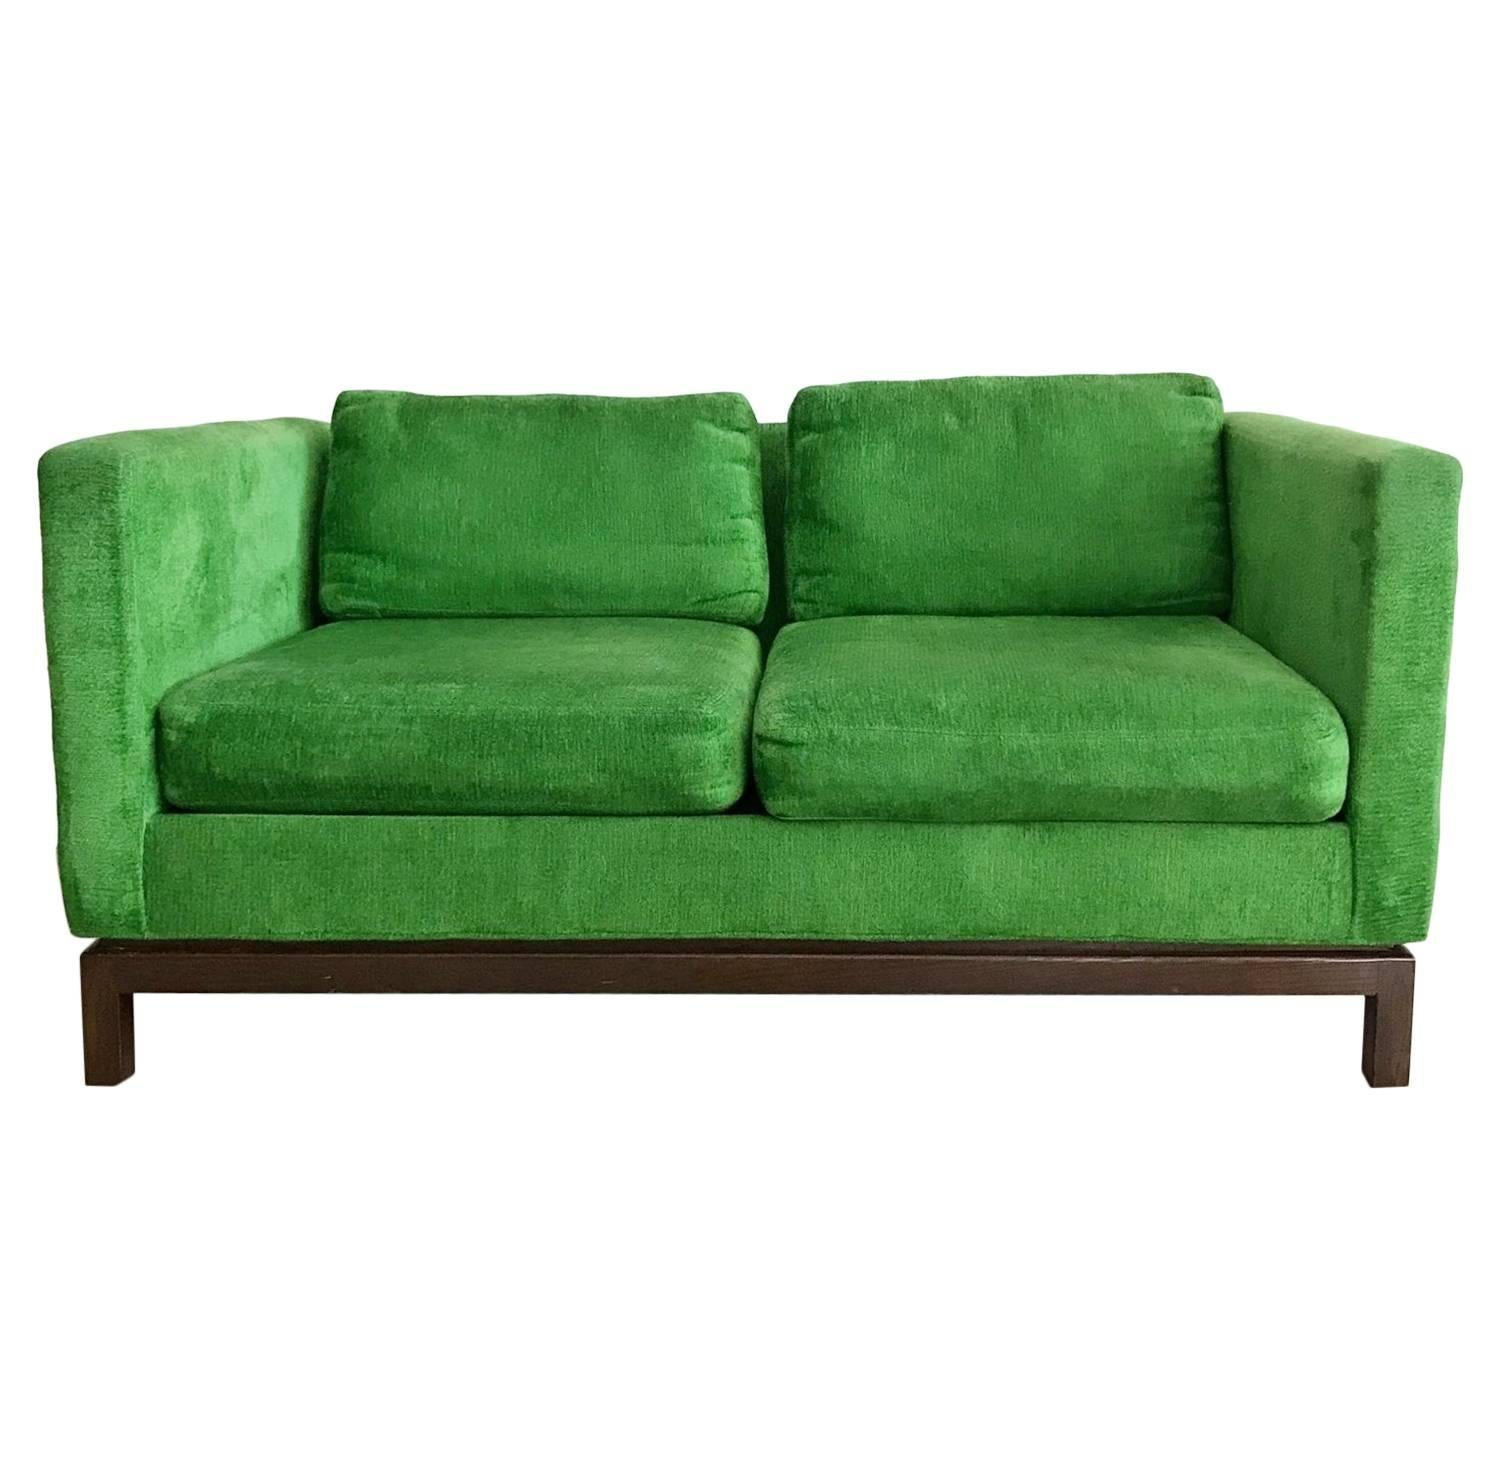 hollywood regency chesterfield Mint Green Velvet Tufted Sofa at